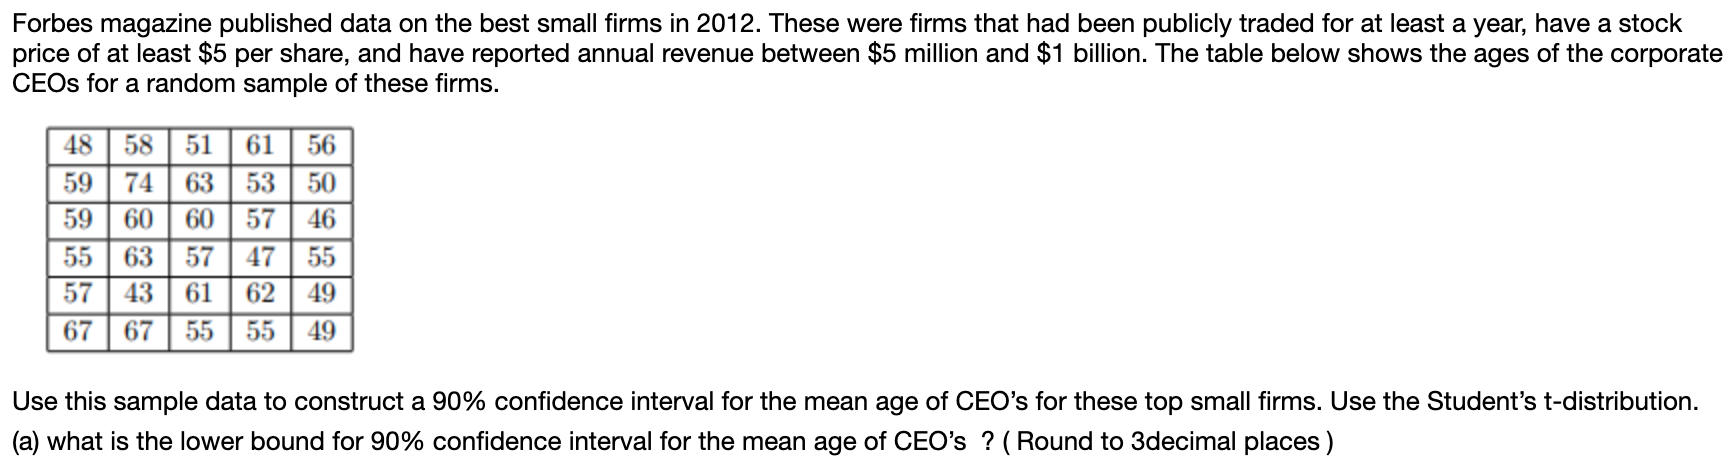 Forbes magazine published data on the best small firms in 2012. These were firms that had been publicly traded for at least a year, have a stock price of at least $5 per share, and have reported annual revenue between $5 million and $1 billion. The table below shows the ages of the corporate CEOS for a random sample of these firms. 58 51 61 48 56 59 74 63 53 50 59 60 60 57 46 55 635747 55 57 43 61 62 49 67 5555 67 49 Use this sample data to construct a 90% confidence interval for the mean age of CEO's for these top small firms. Use the Student's t-distribution (a) what is the lower bound for 90% confidence interval for the mean age of CEO's? (Round to 3decimal places)